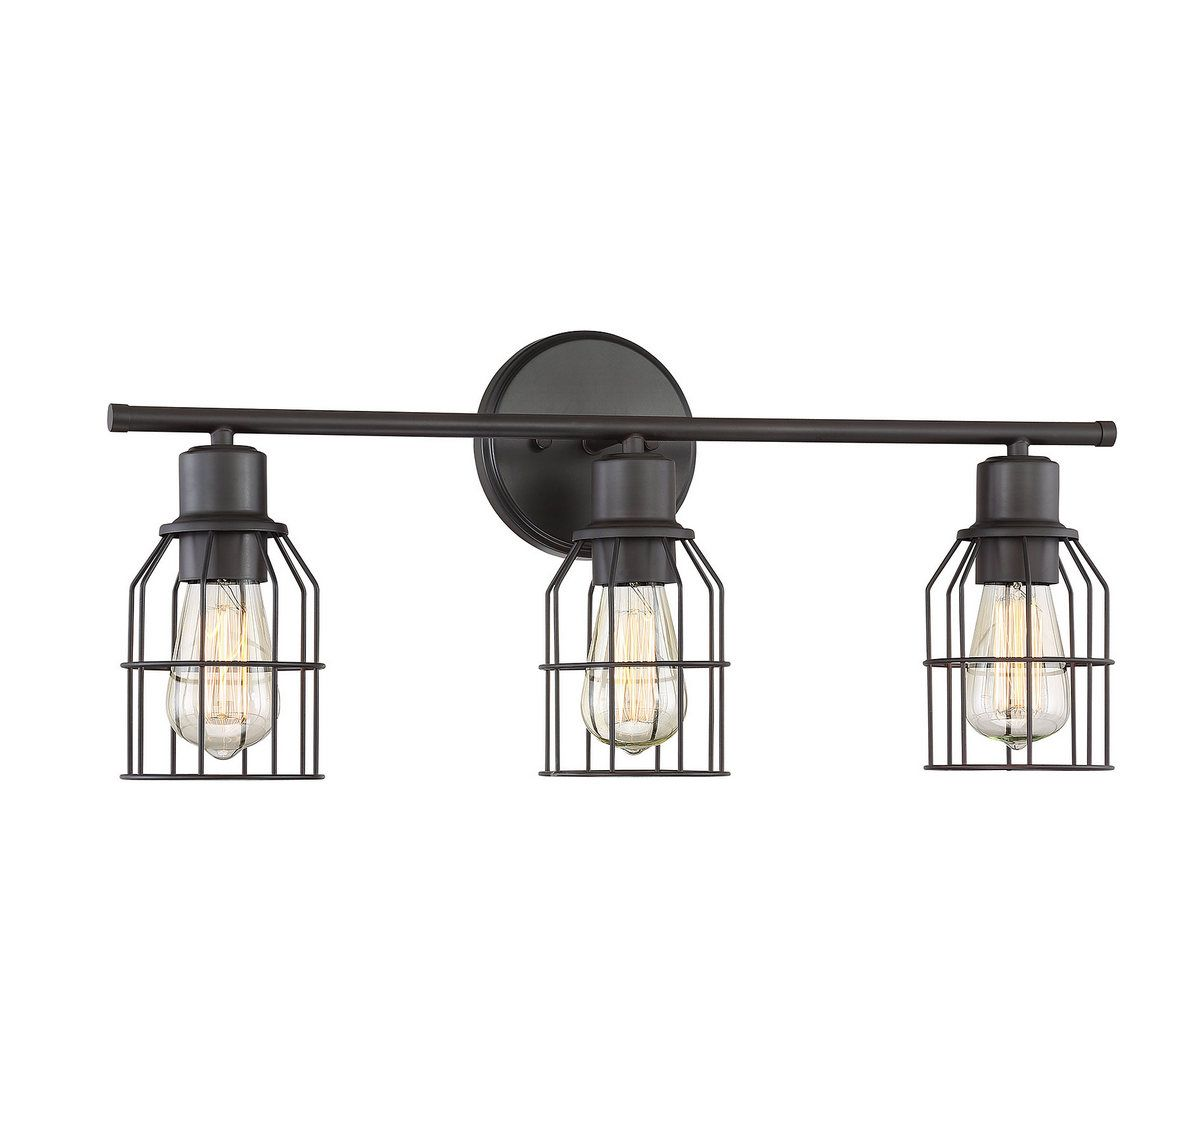 Trade Winds Lighting Industrial Wire 3-Light Bath Bar In